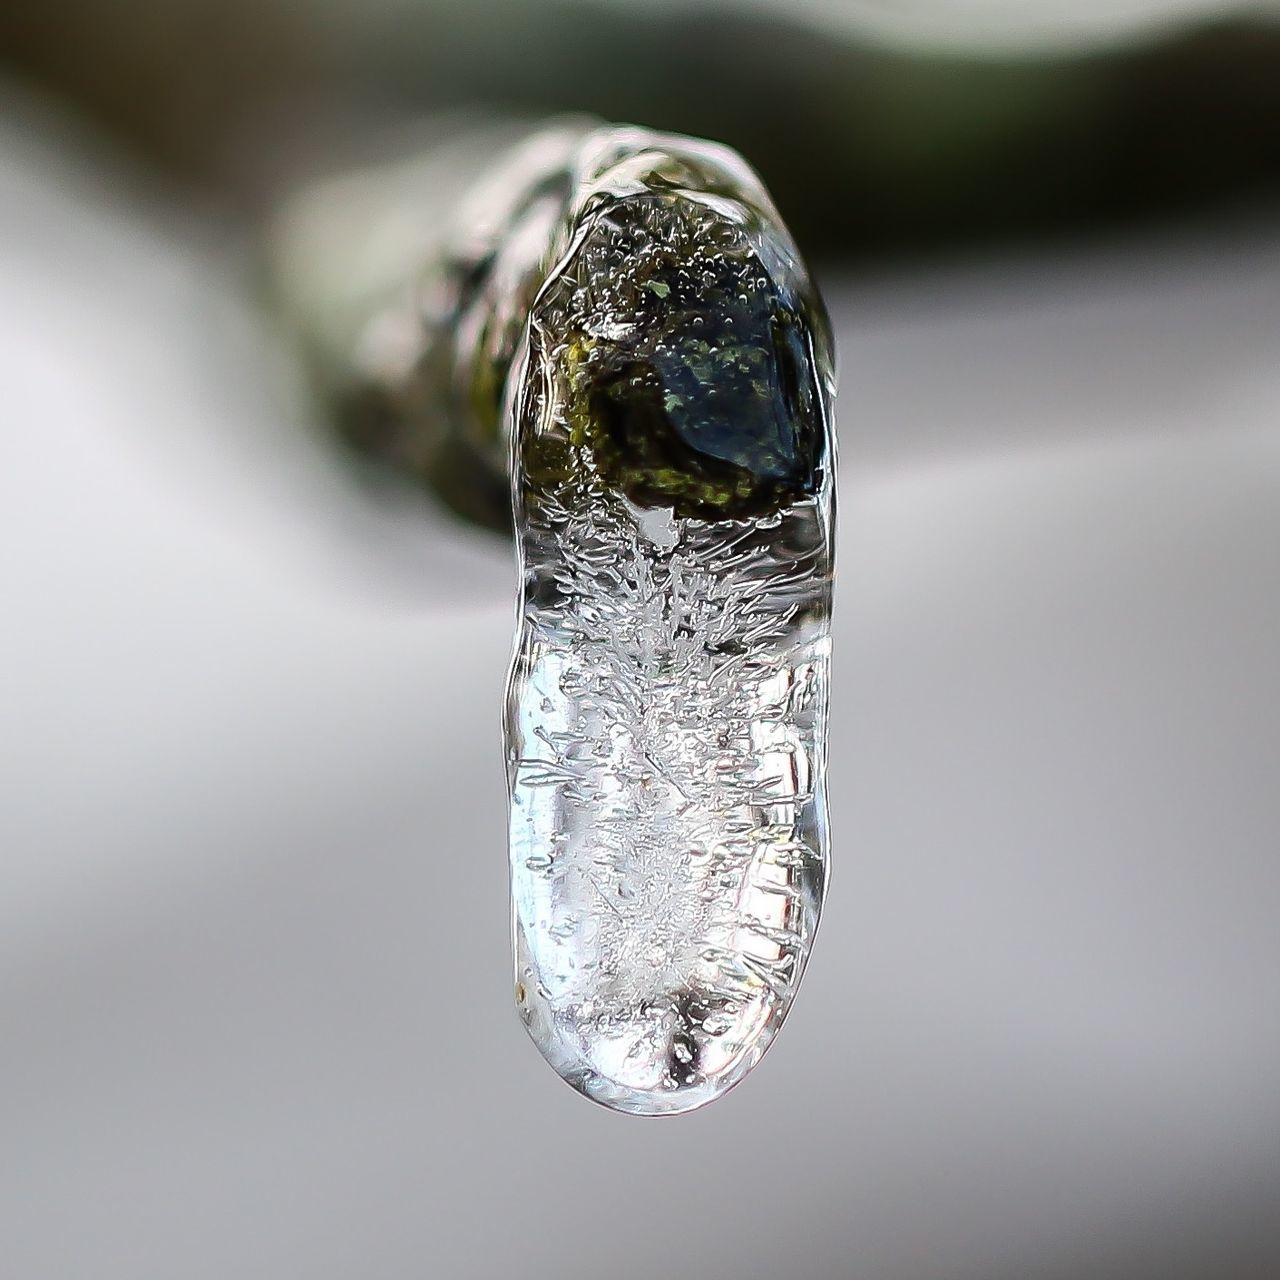 water, close-up, no people, purity, day, indoors, freshness, nature, refraction